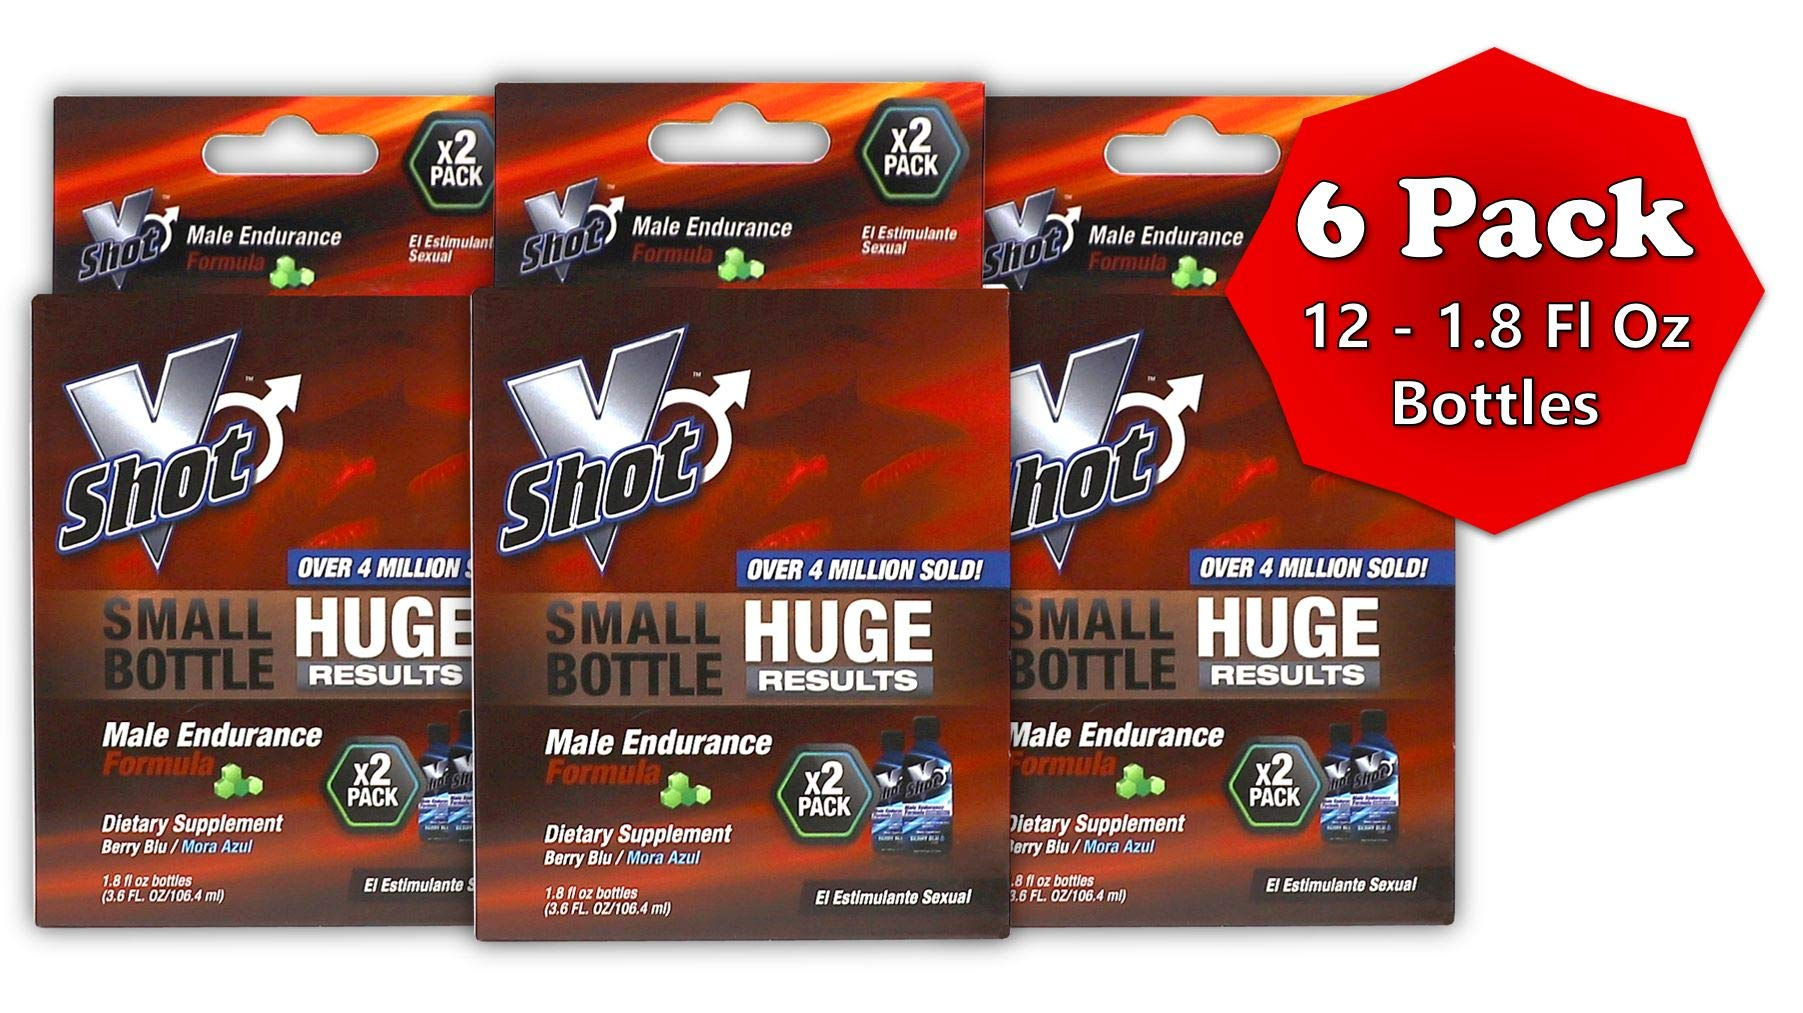 V Shot Male Endurance Formula | Increased Sexual Stamina Boosters for Fast Acting Rise in Vitality, Blood Flow, Vibrant Arousals, Longer Durations, and Sexually Enhanced Desires; (12) 1.8 Fo Bottles by VSHOT